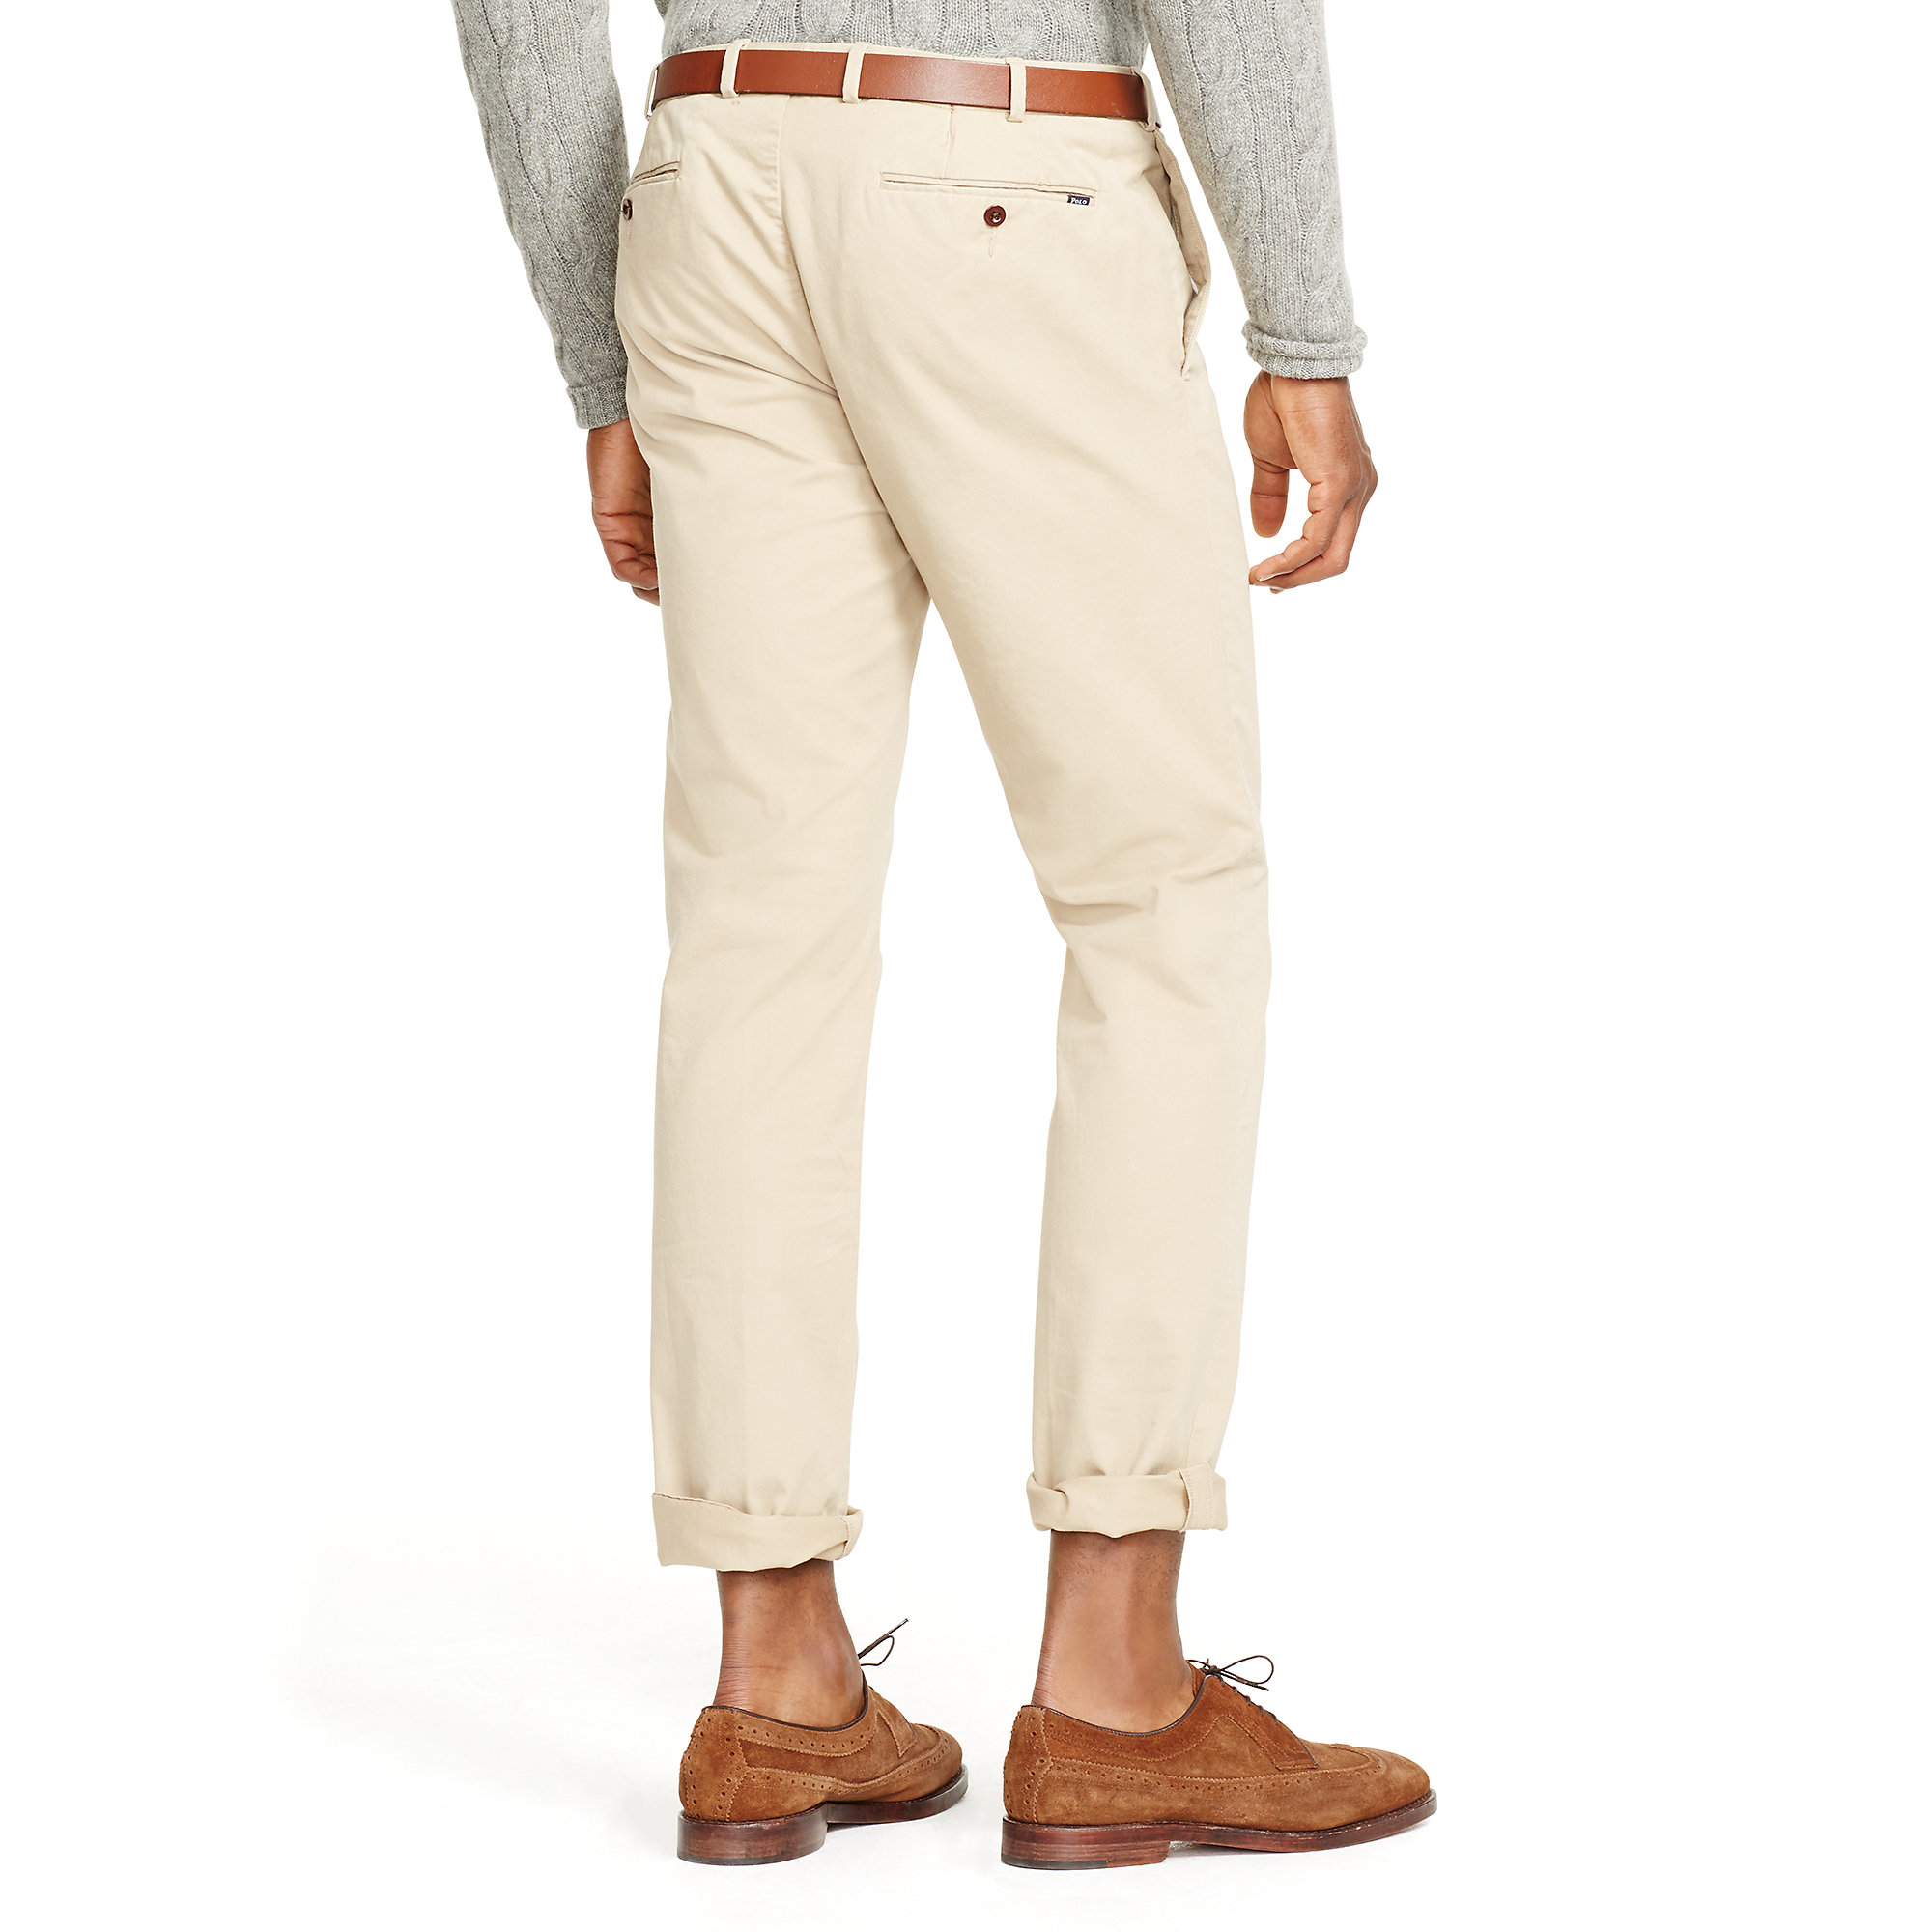 f6df4165b7d Lyst - Polo Ralph Lauren Stretch Slim-fit Chino in Natural for Men